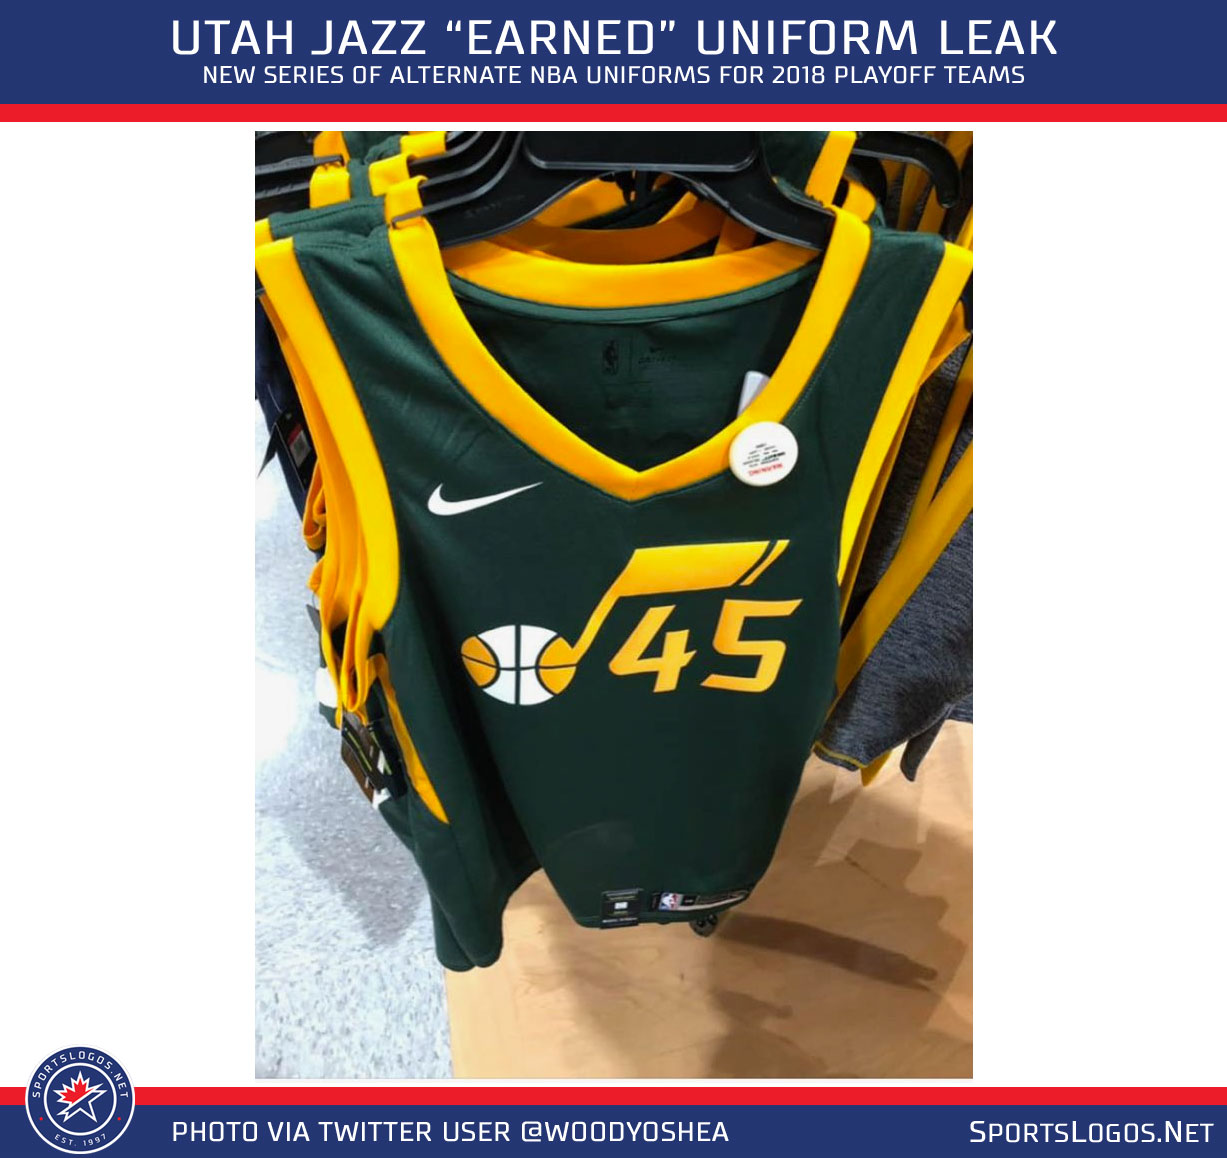 wholesale dealer 2e03f b4c64 New Earned Uniforms for Heat, Jazz, Warriors Leak | Chris ...